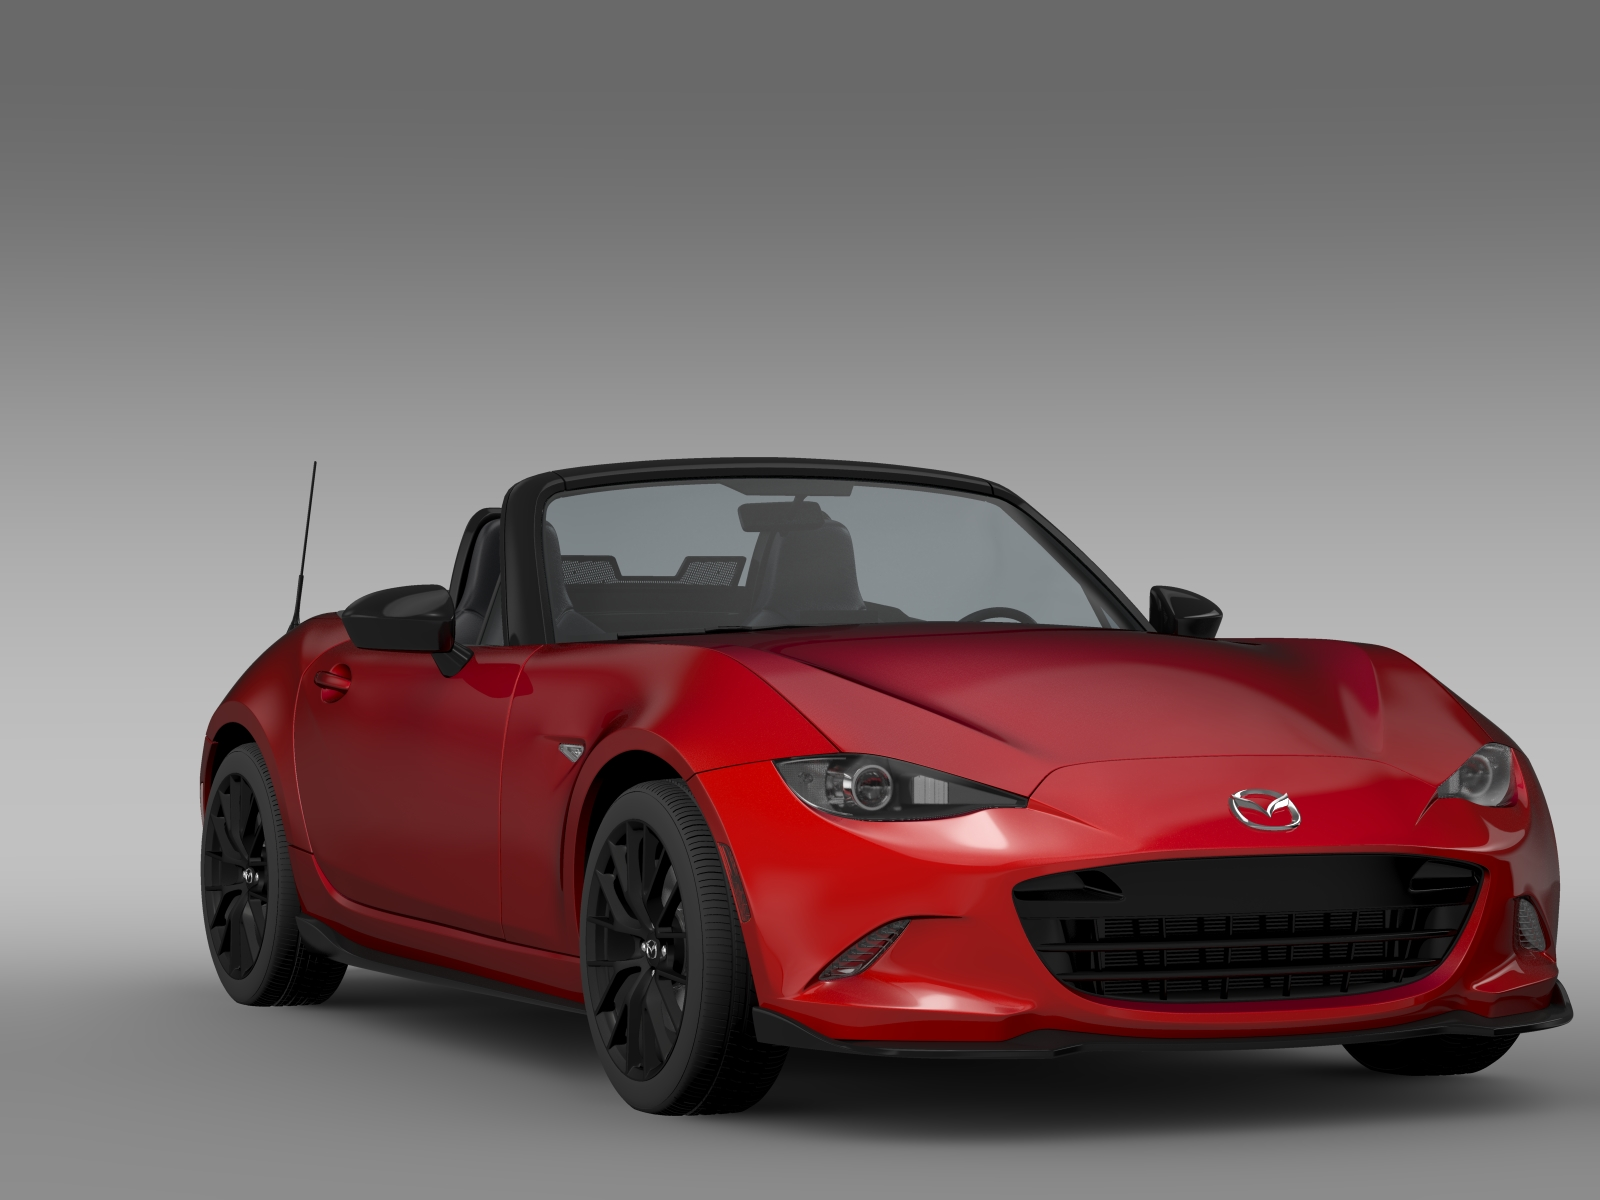 mazda mx 5 maita club 2016 3d model buy mazda mx 5 maita. Black Bedroom Furniture Sets. Home Design Ideas